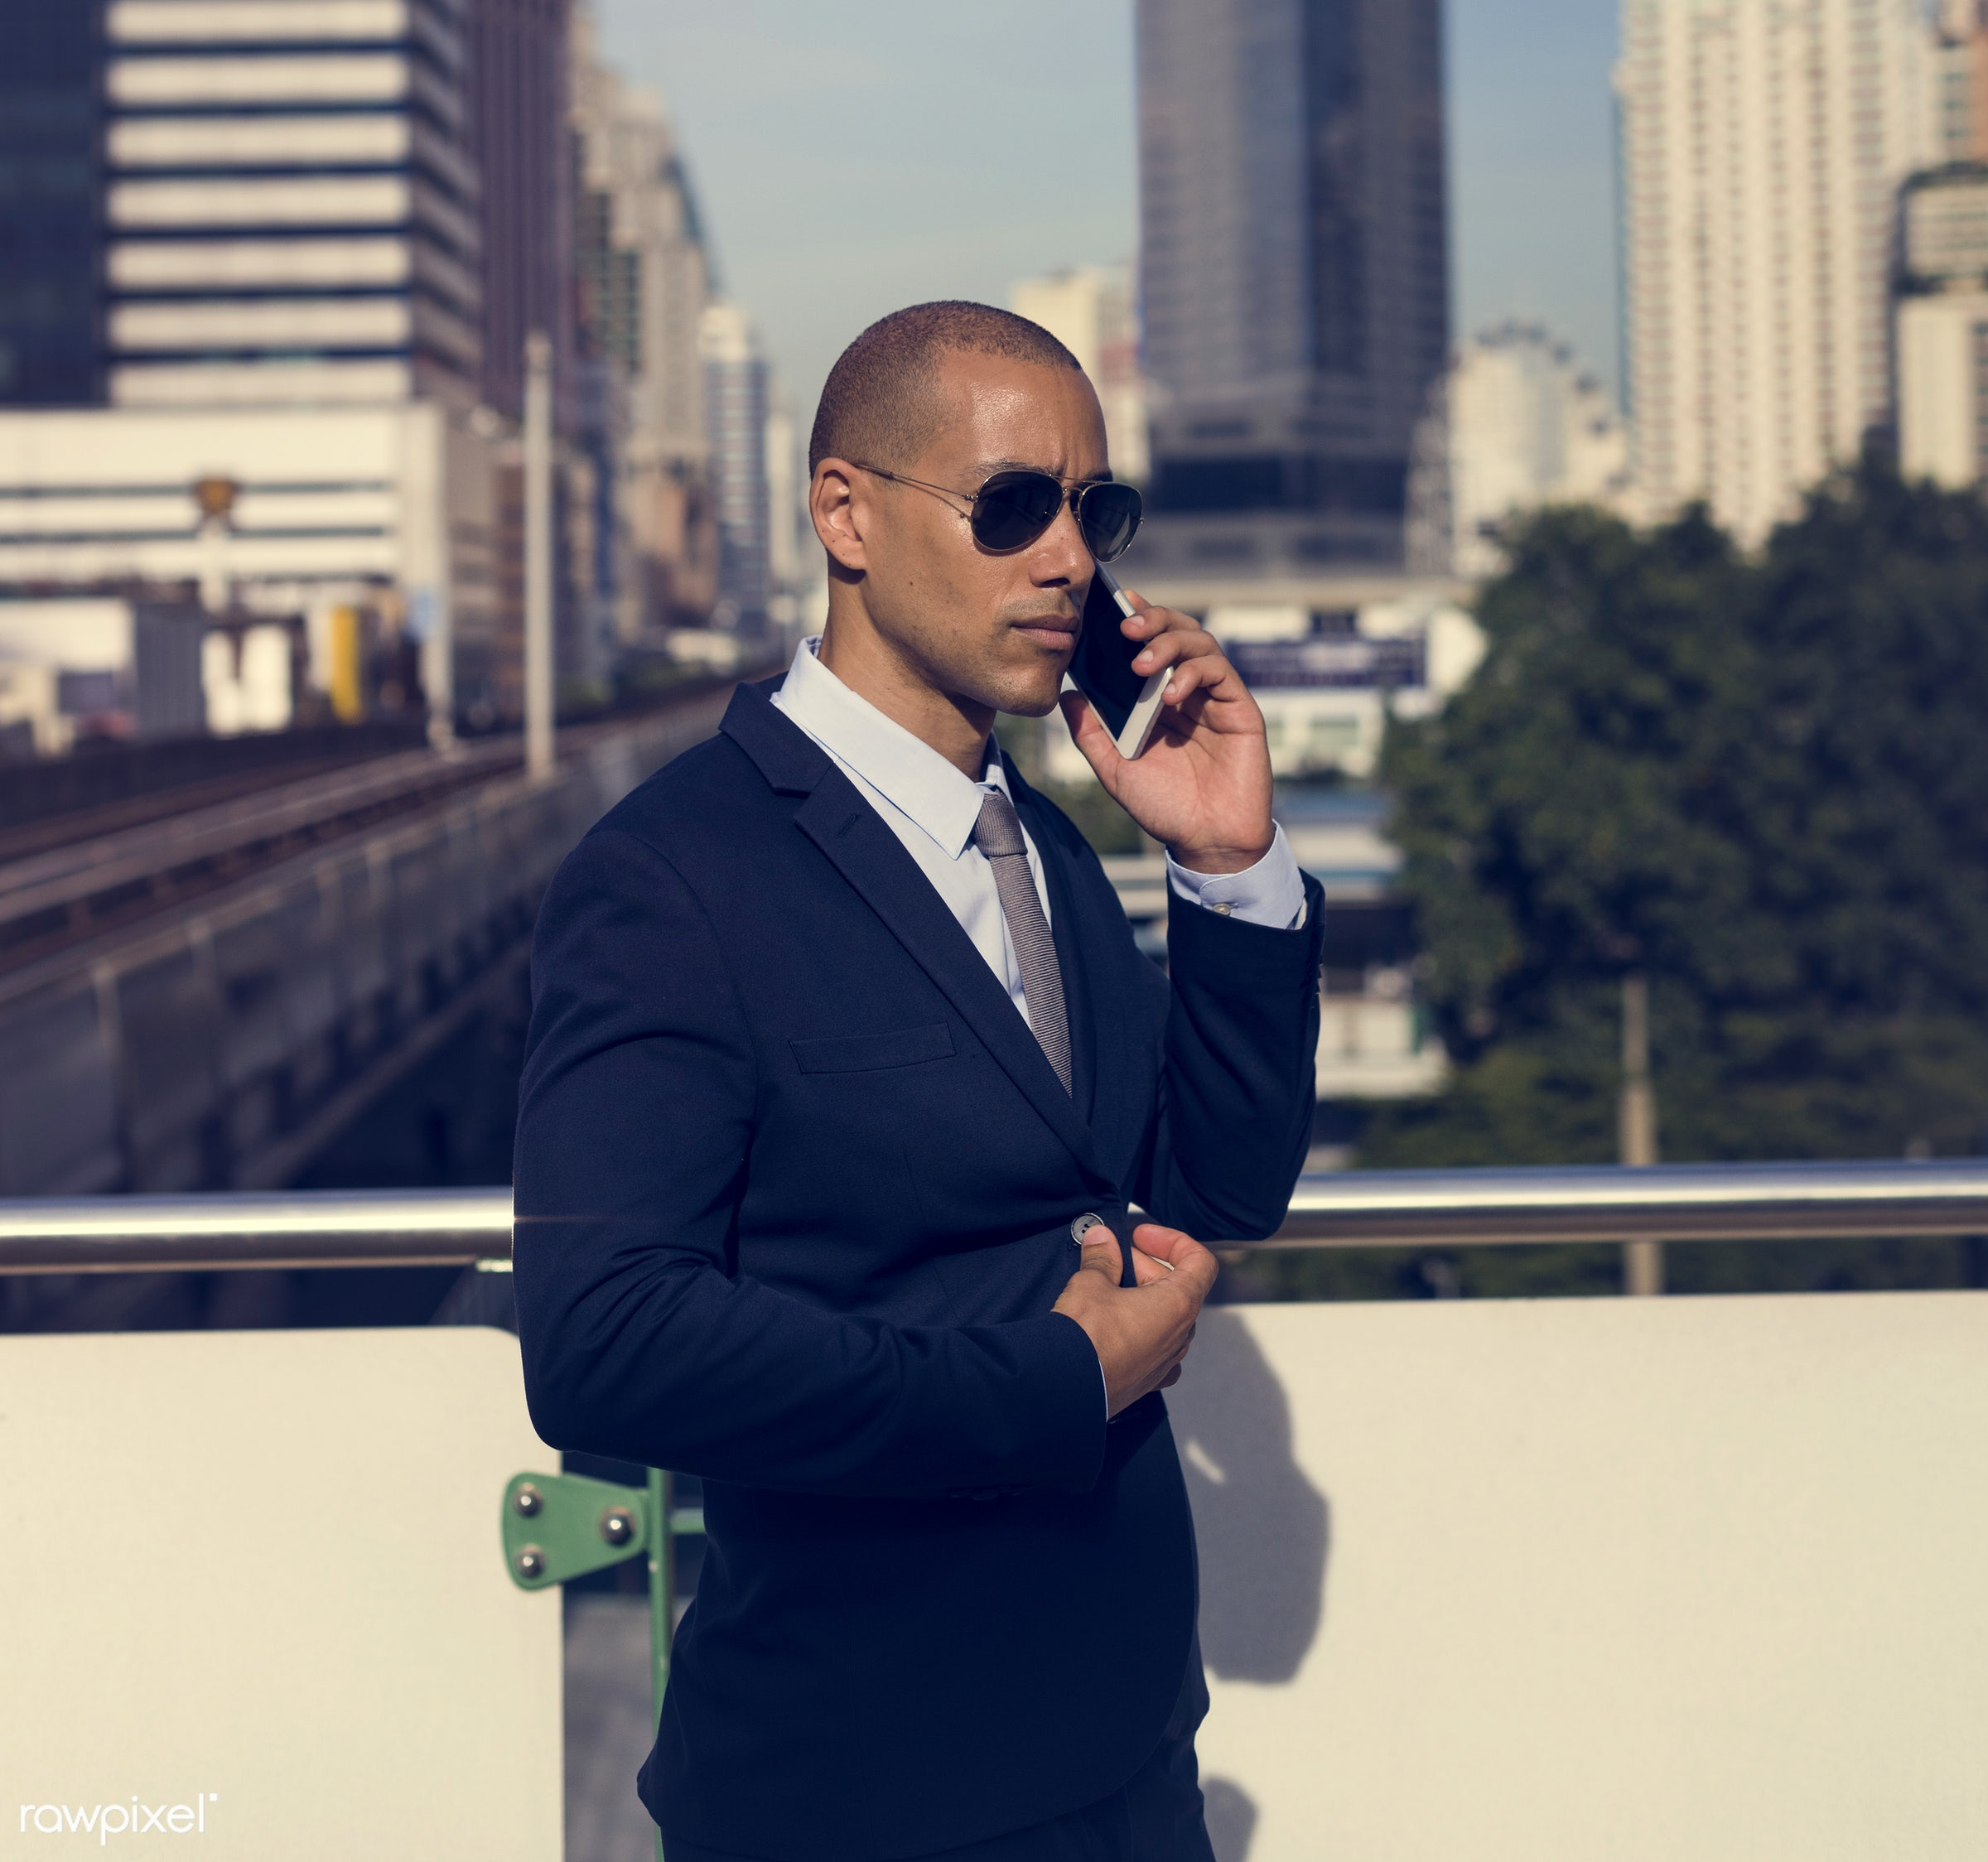 update, expression, face, phone, person, suit and tie, white collar worker, busy, calling, people, business, hands, middle...